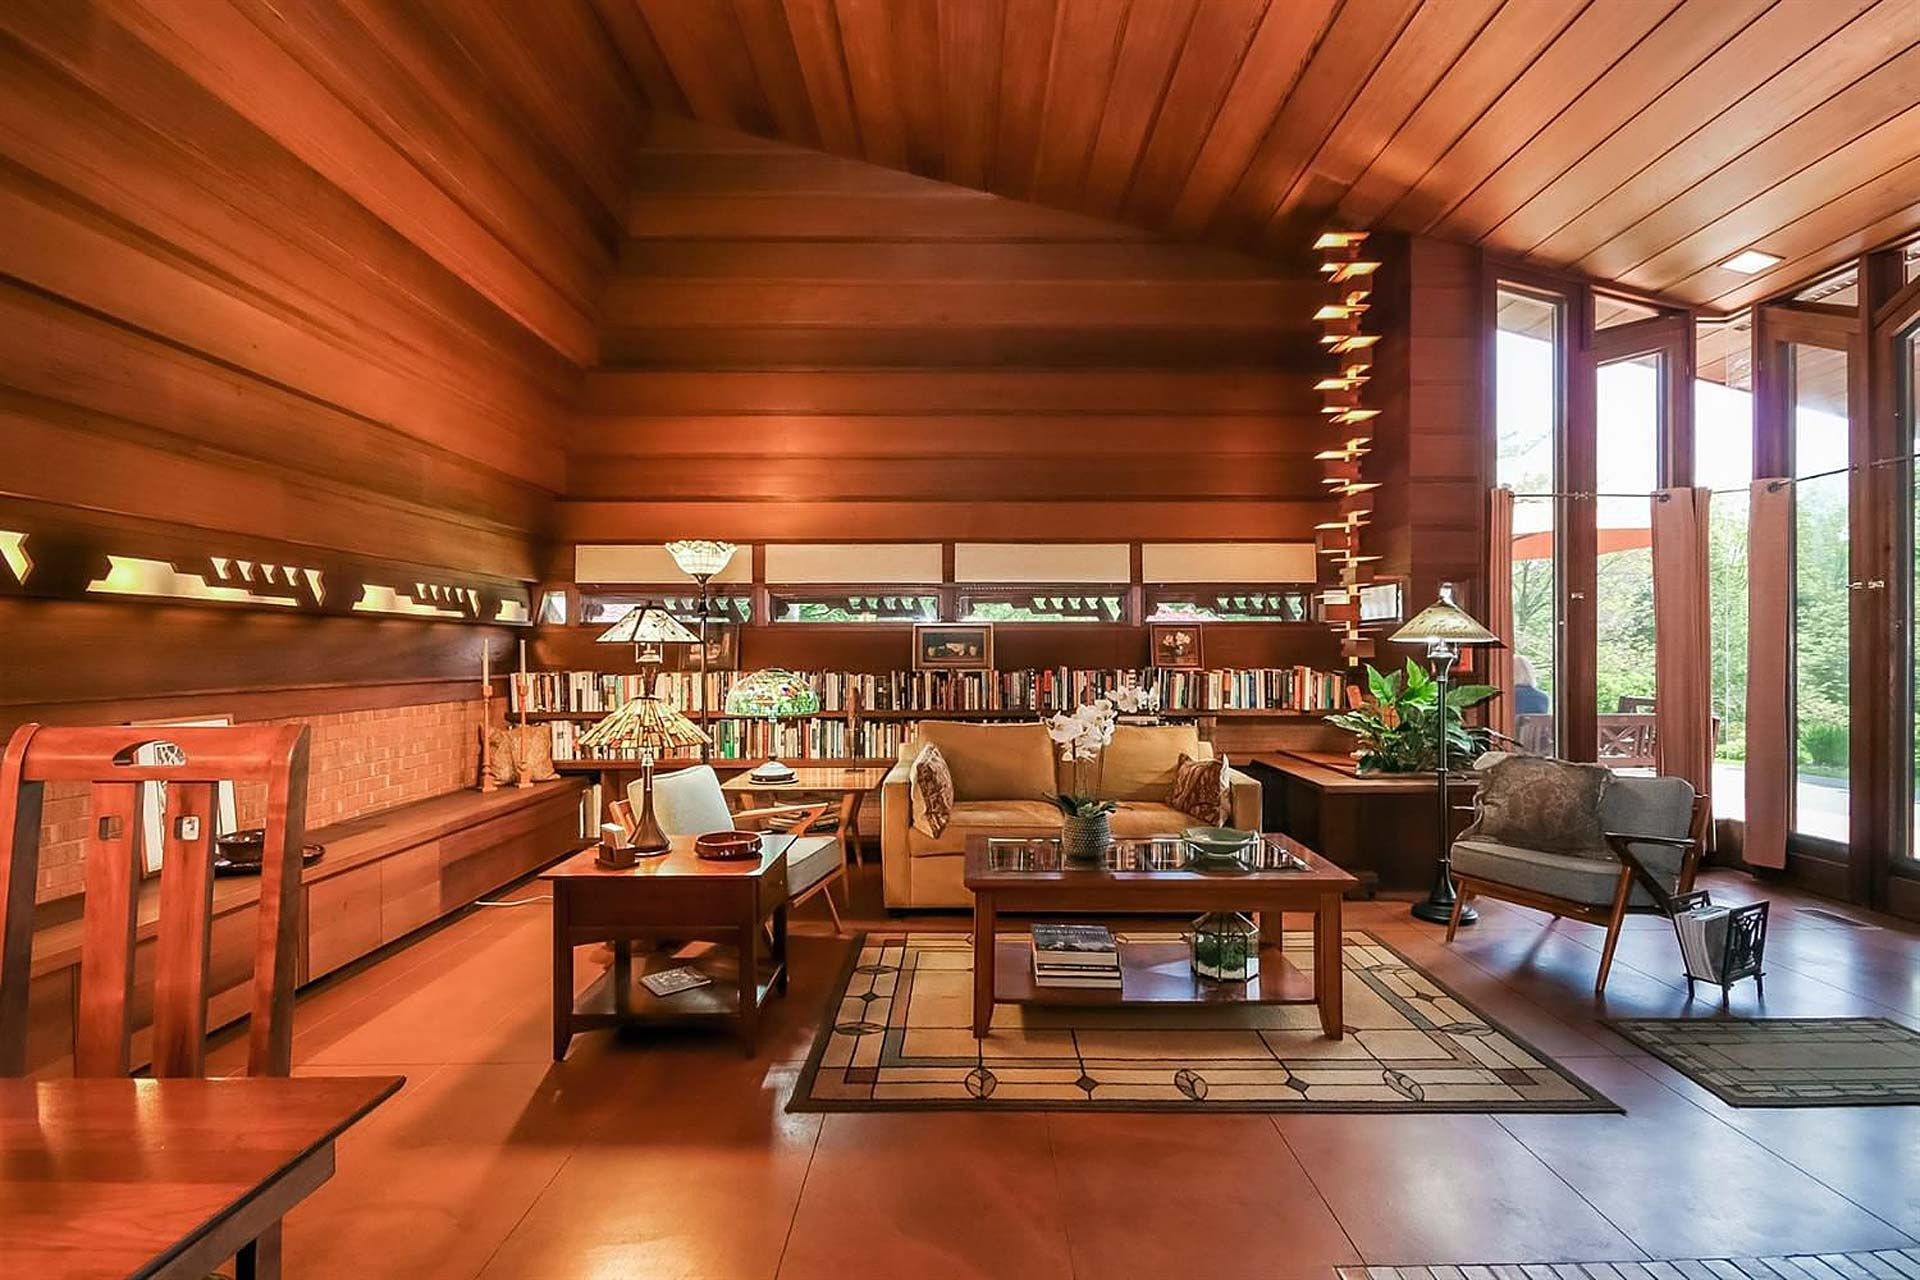 The Haddock House Was Designed By Frank Lloyd Wright In